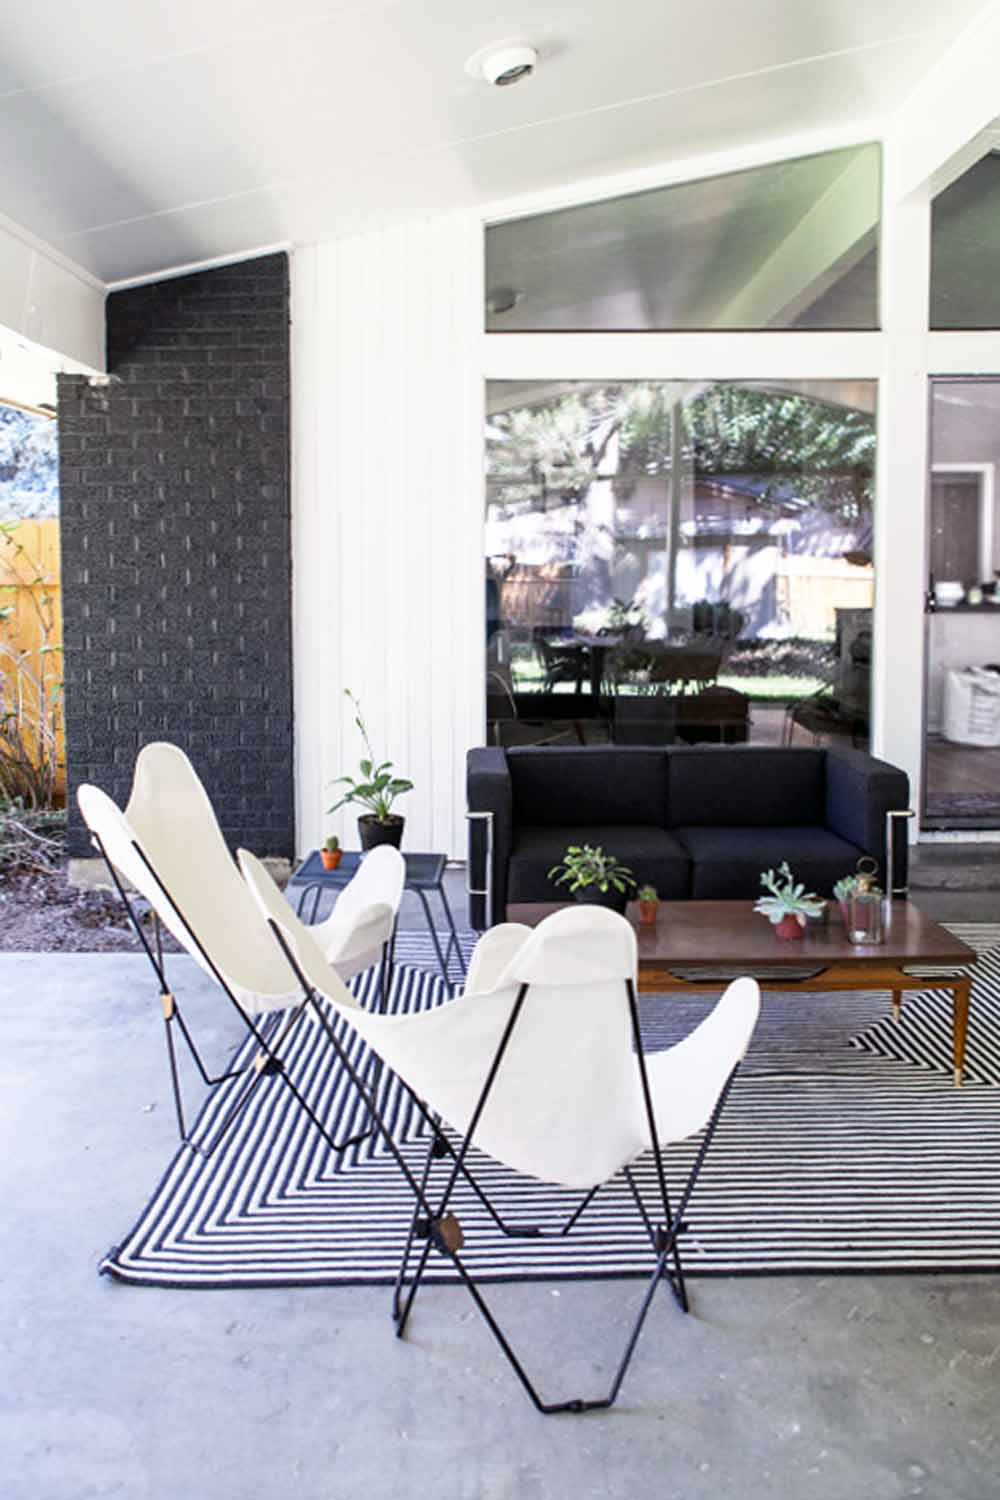 Before & After: The Simply Grove Patio Makeover, on Design*Sponge